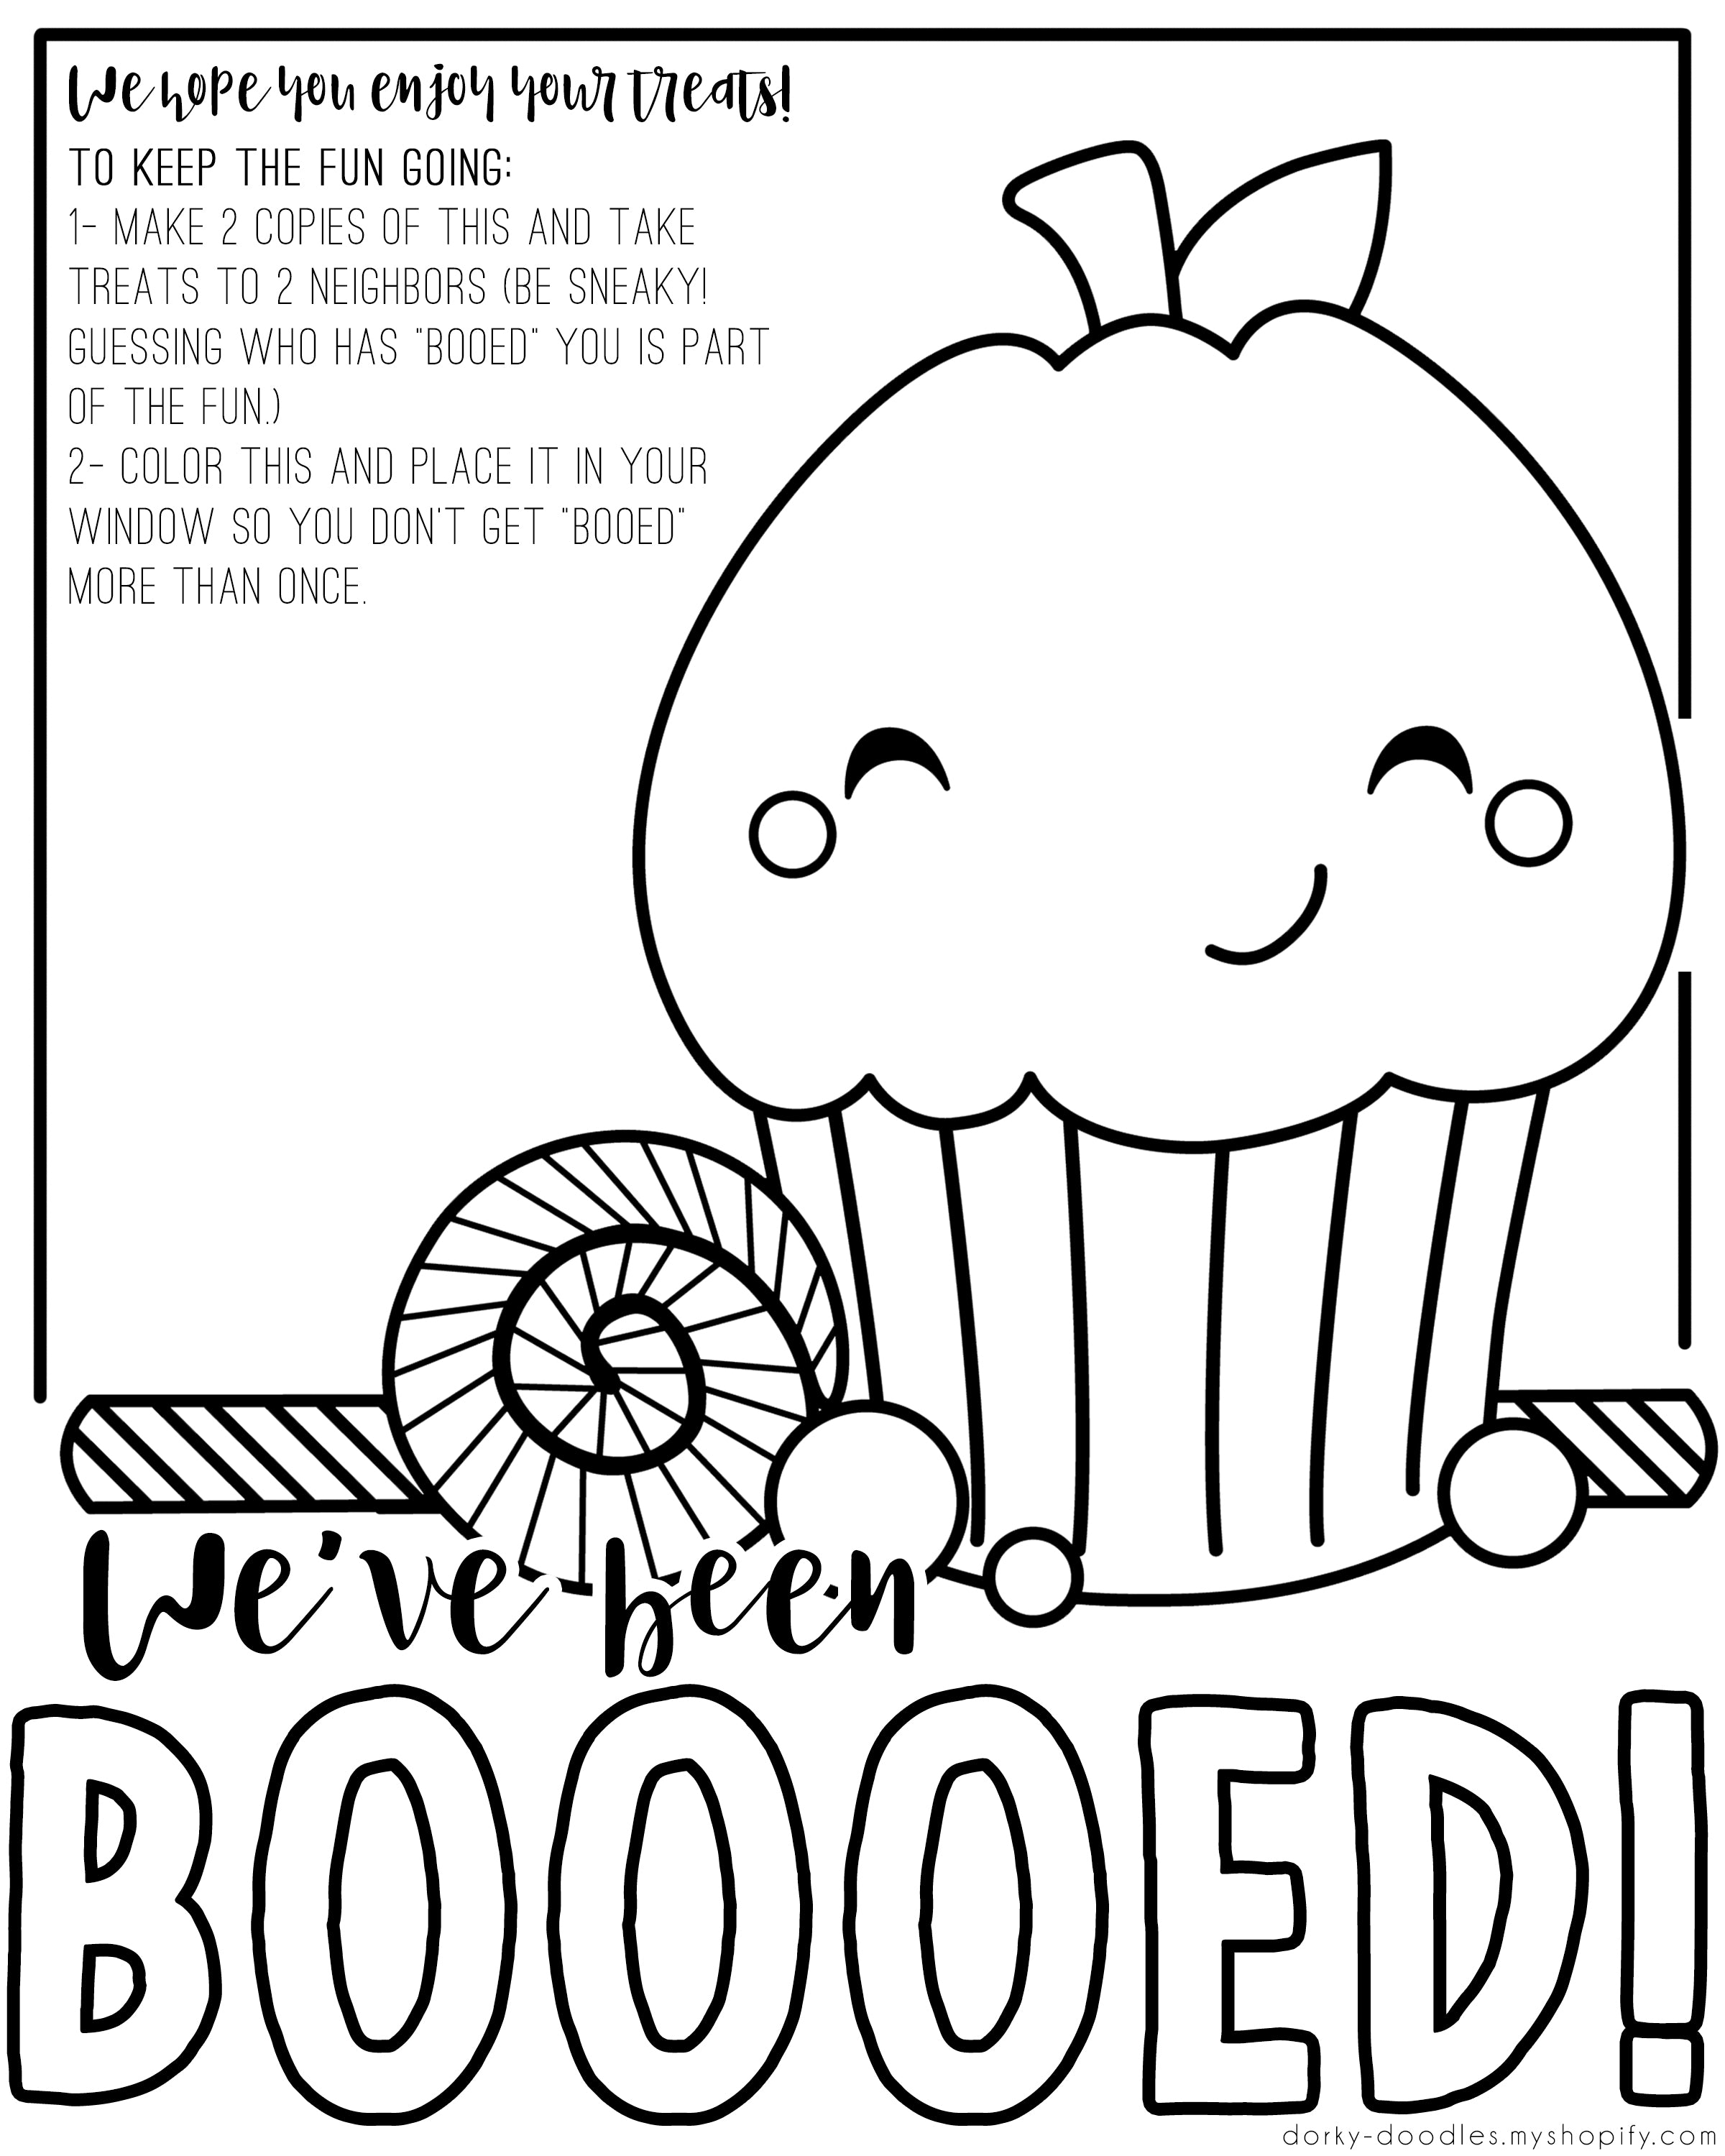 You've Been Booed Printable - Dorky Doodles